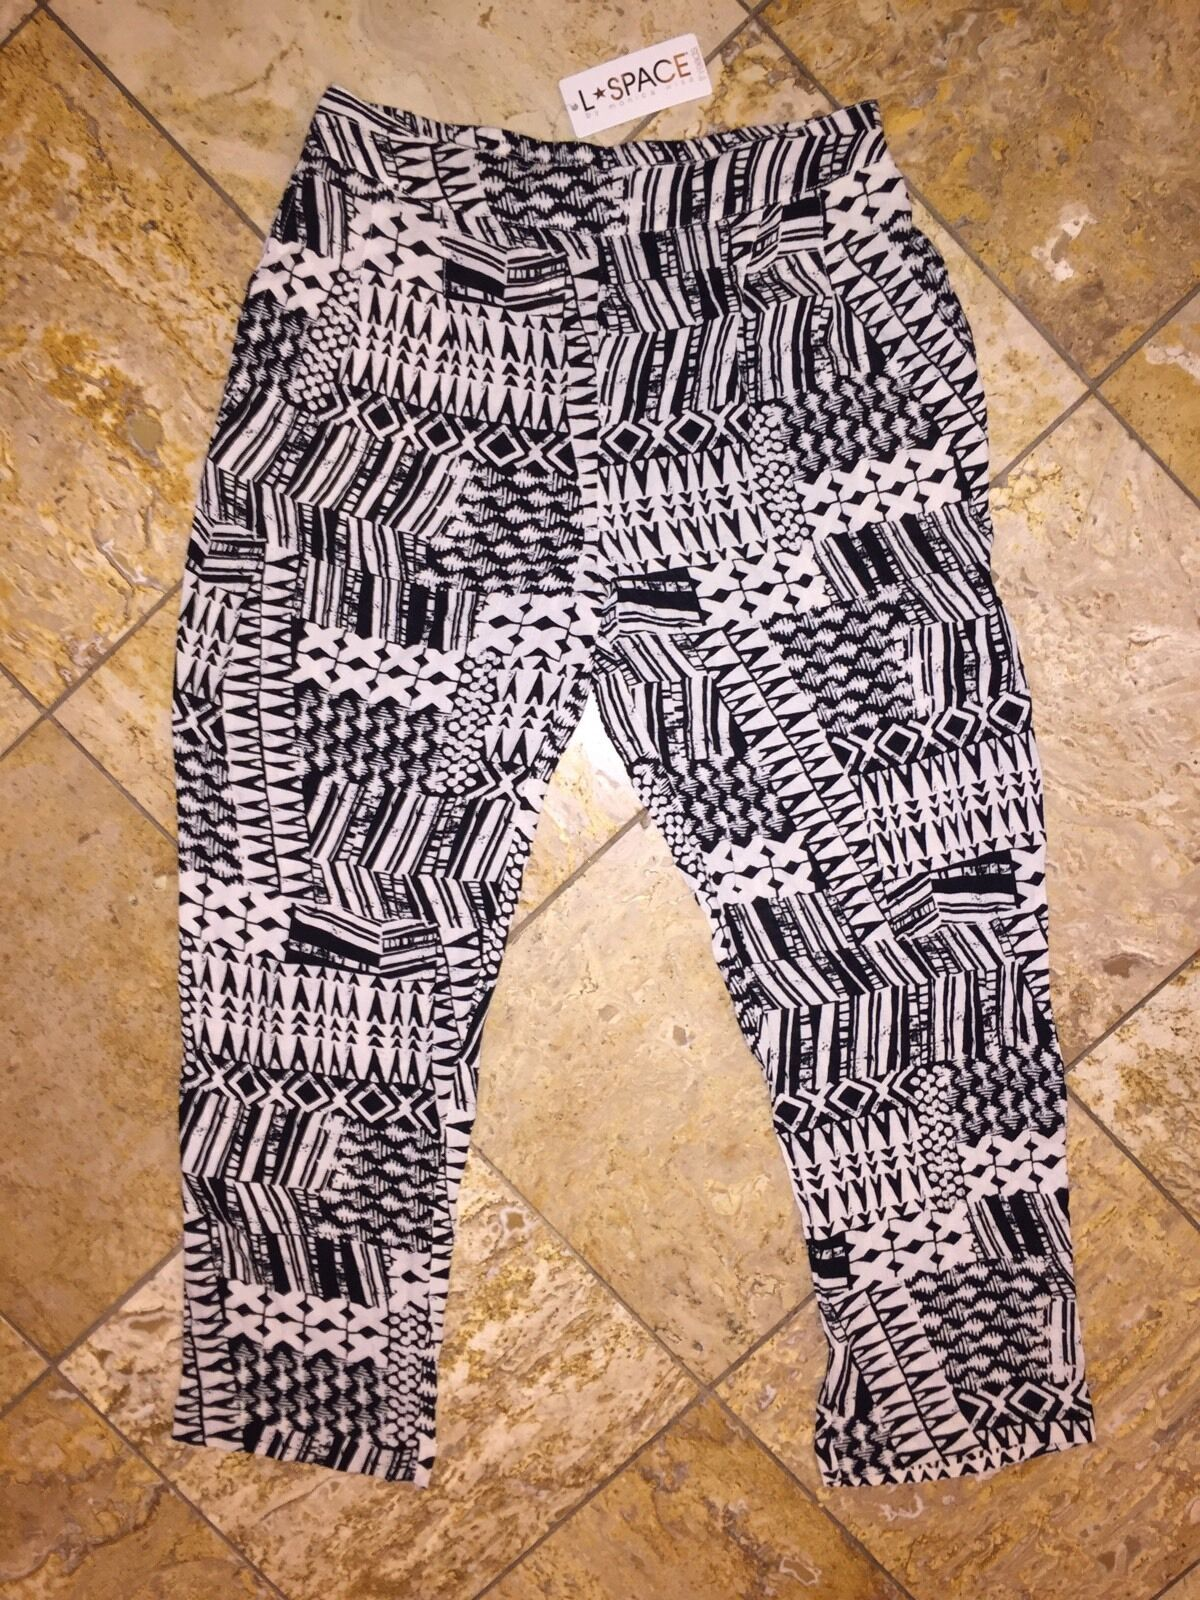 NWT  LSPACE Monica Wise Threads Ivory Coast Trouser Beach Pants Cover-up S